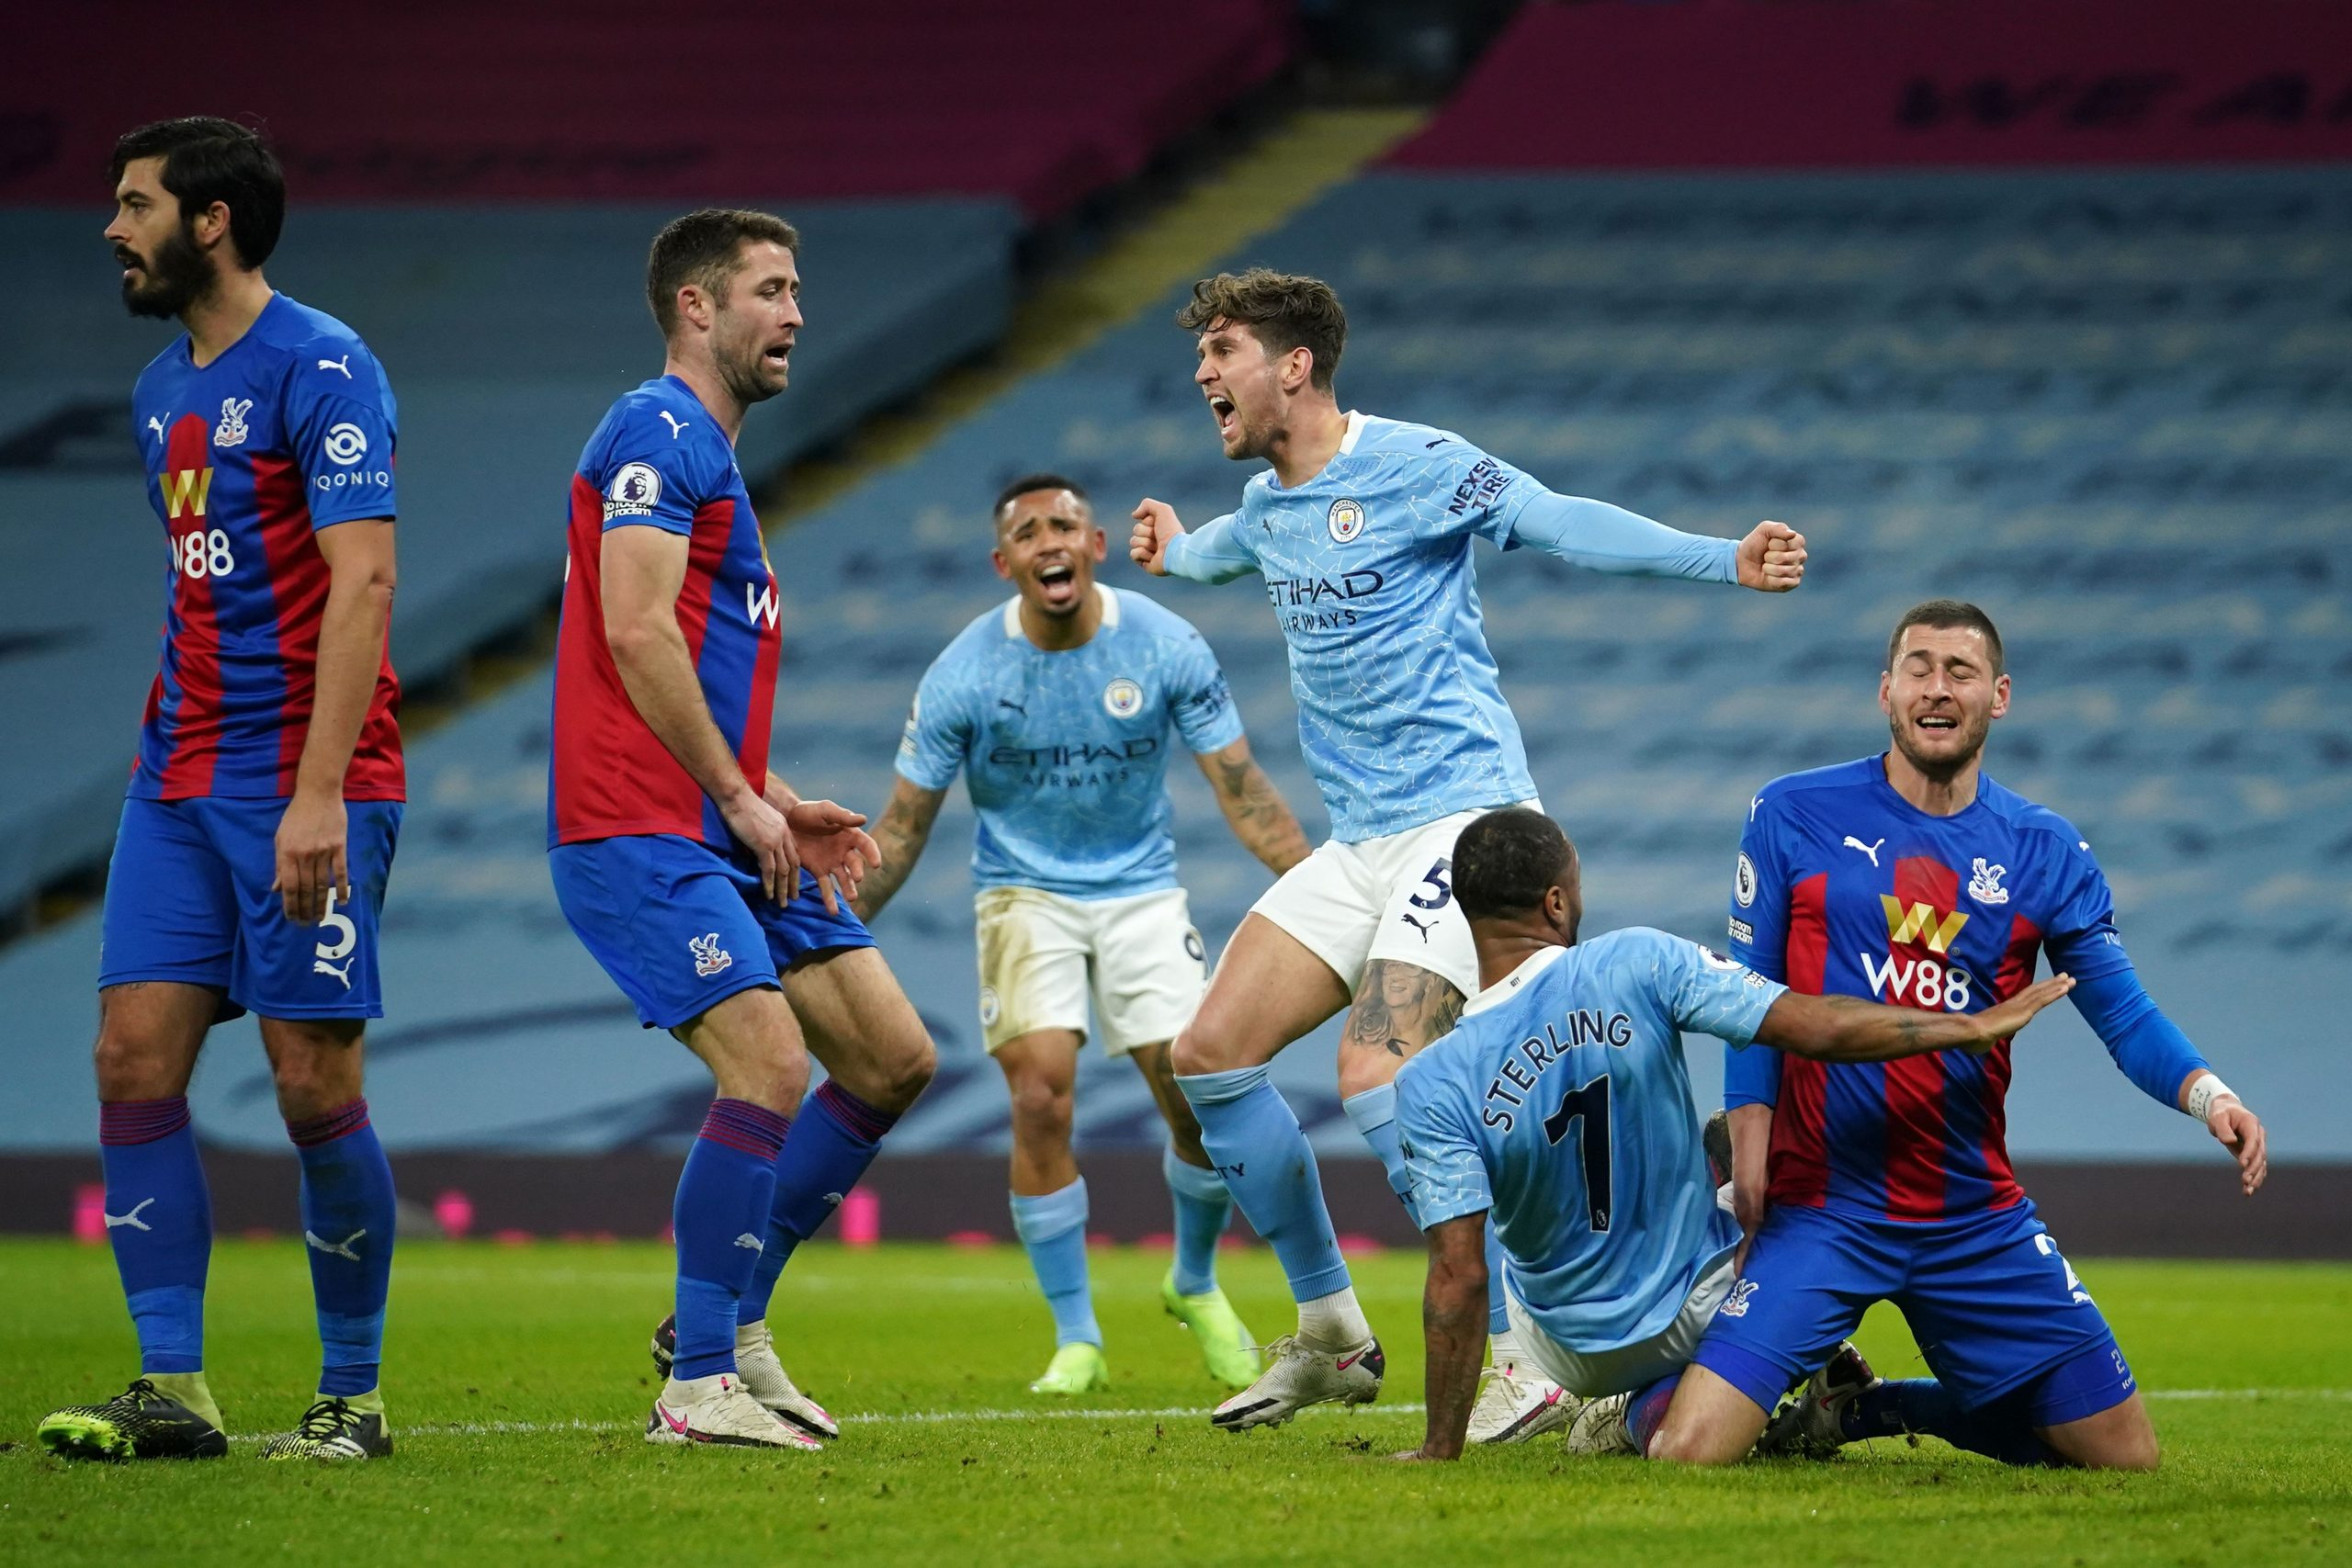 Manchester City 4-0 Crystal Palace Live broadcast!  Stones, Gundogan goals – latest score, Premier League matches broadcast, updates